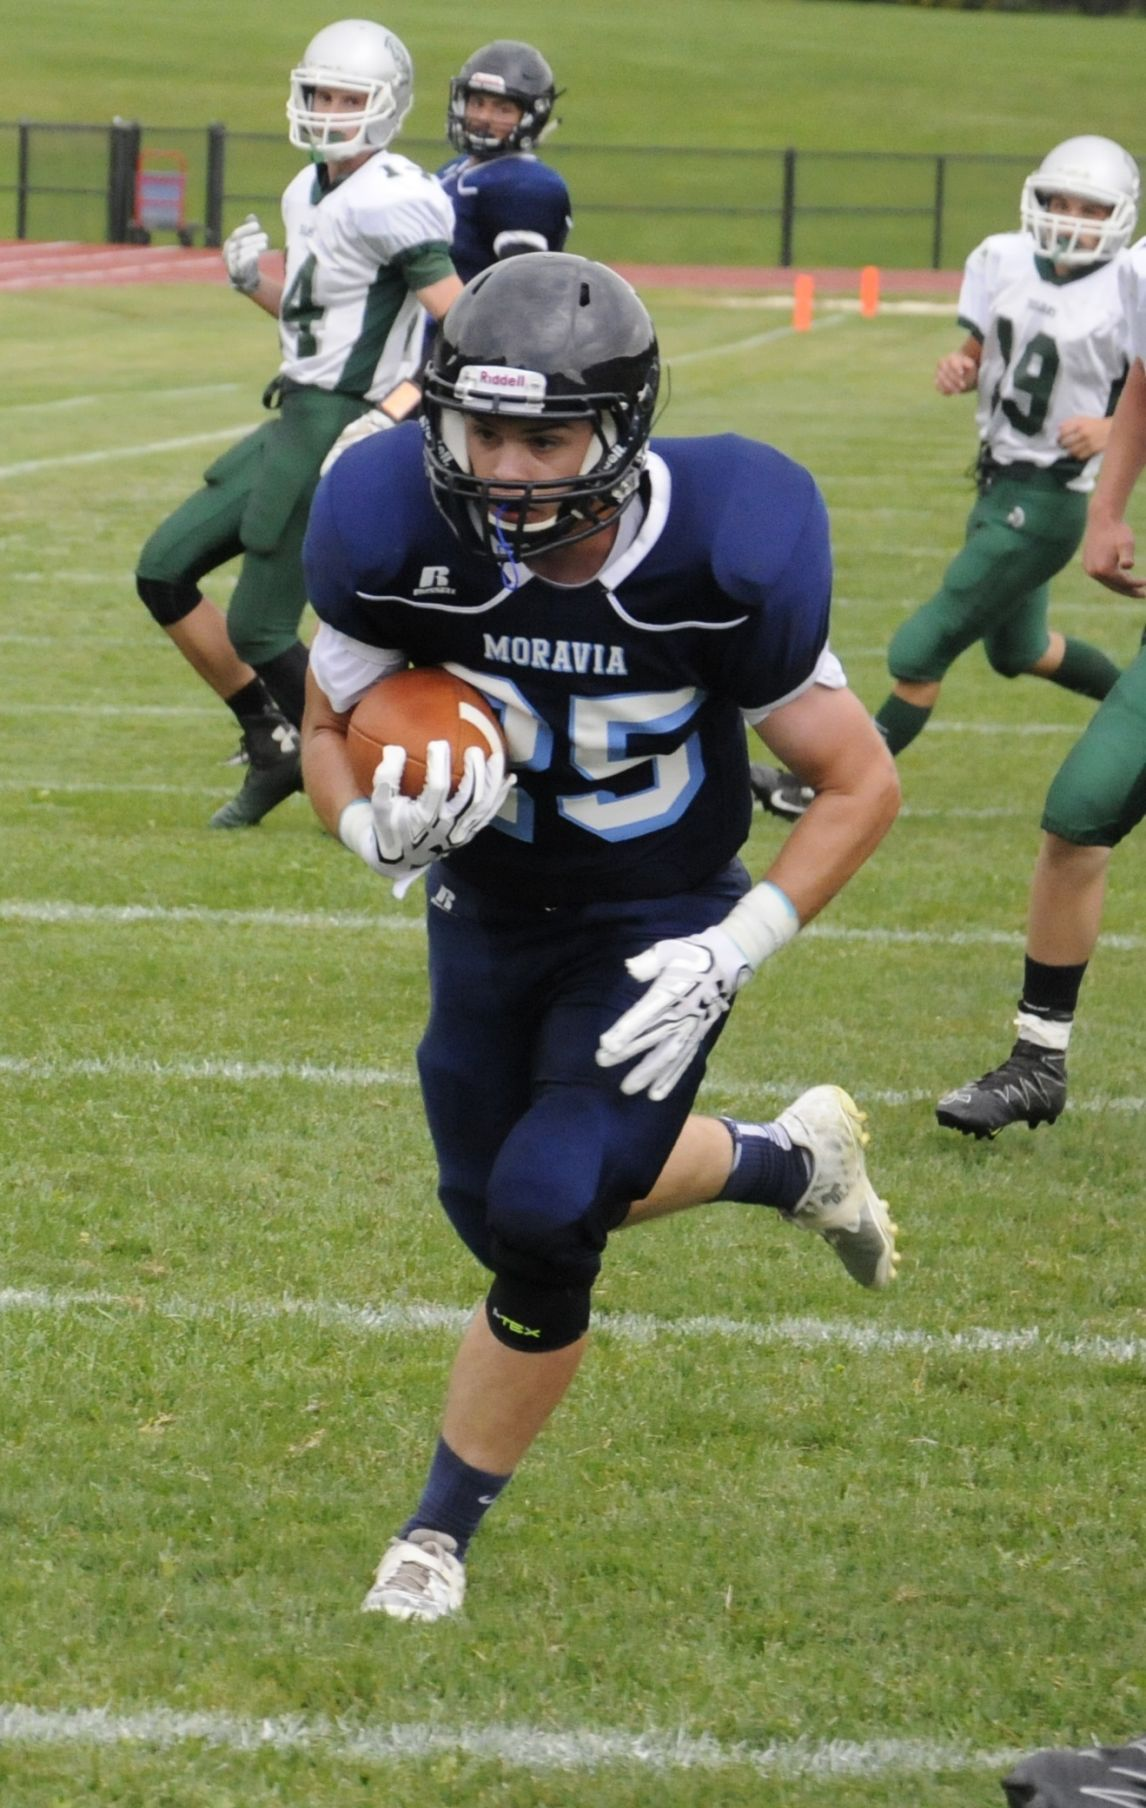 moravia football picks up first win with shutout over newfield